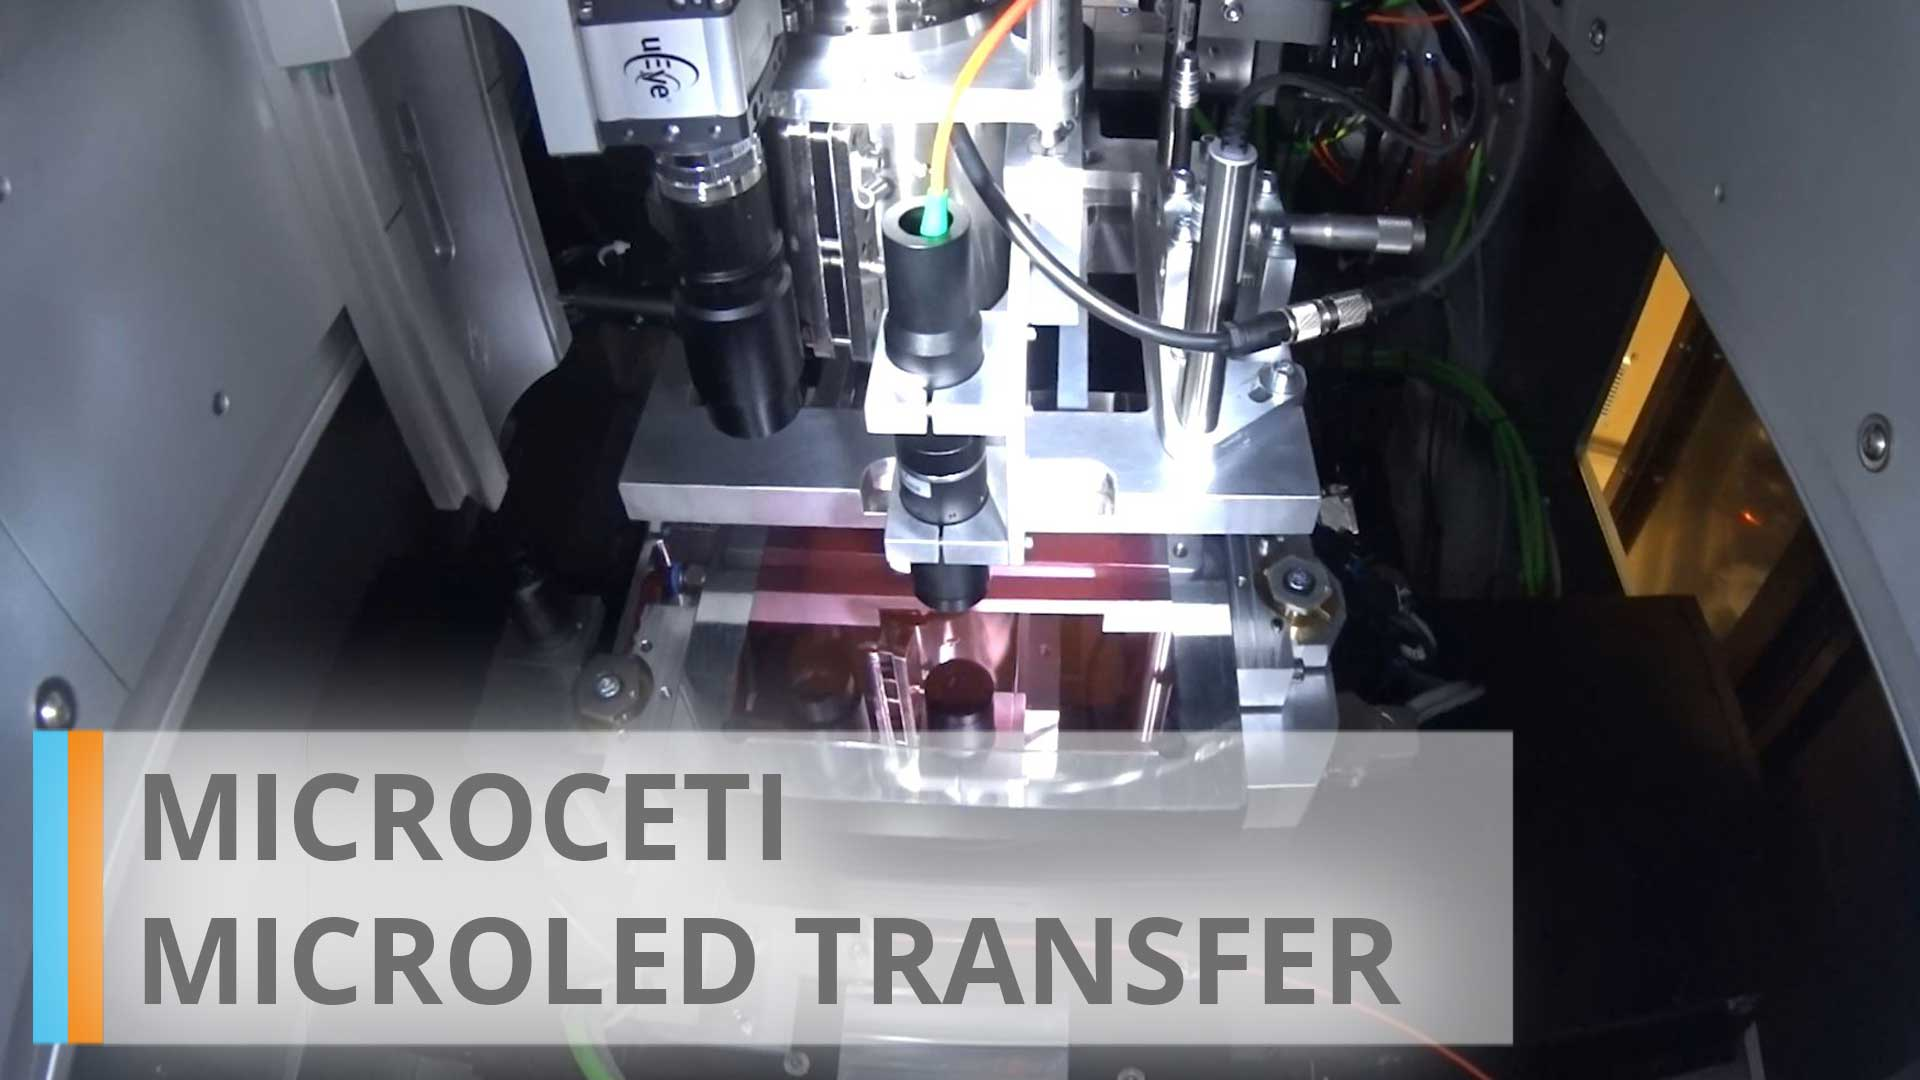 microCETI: microLED transfer system